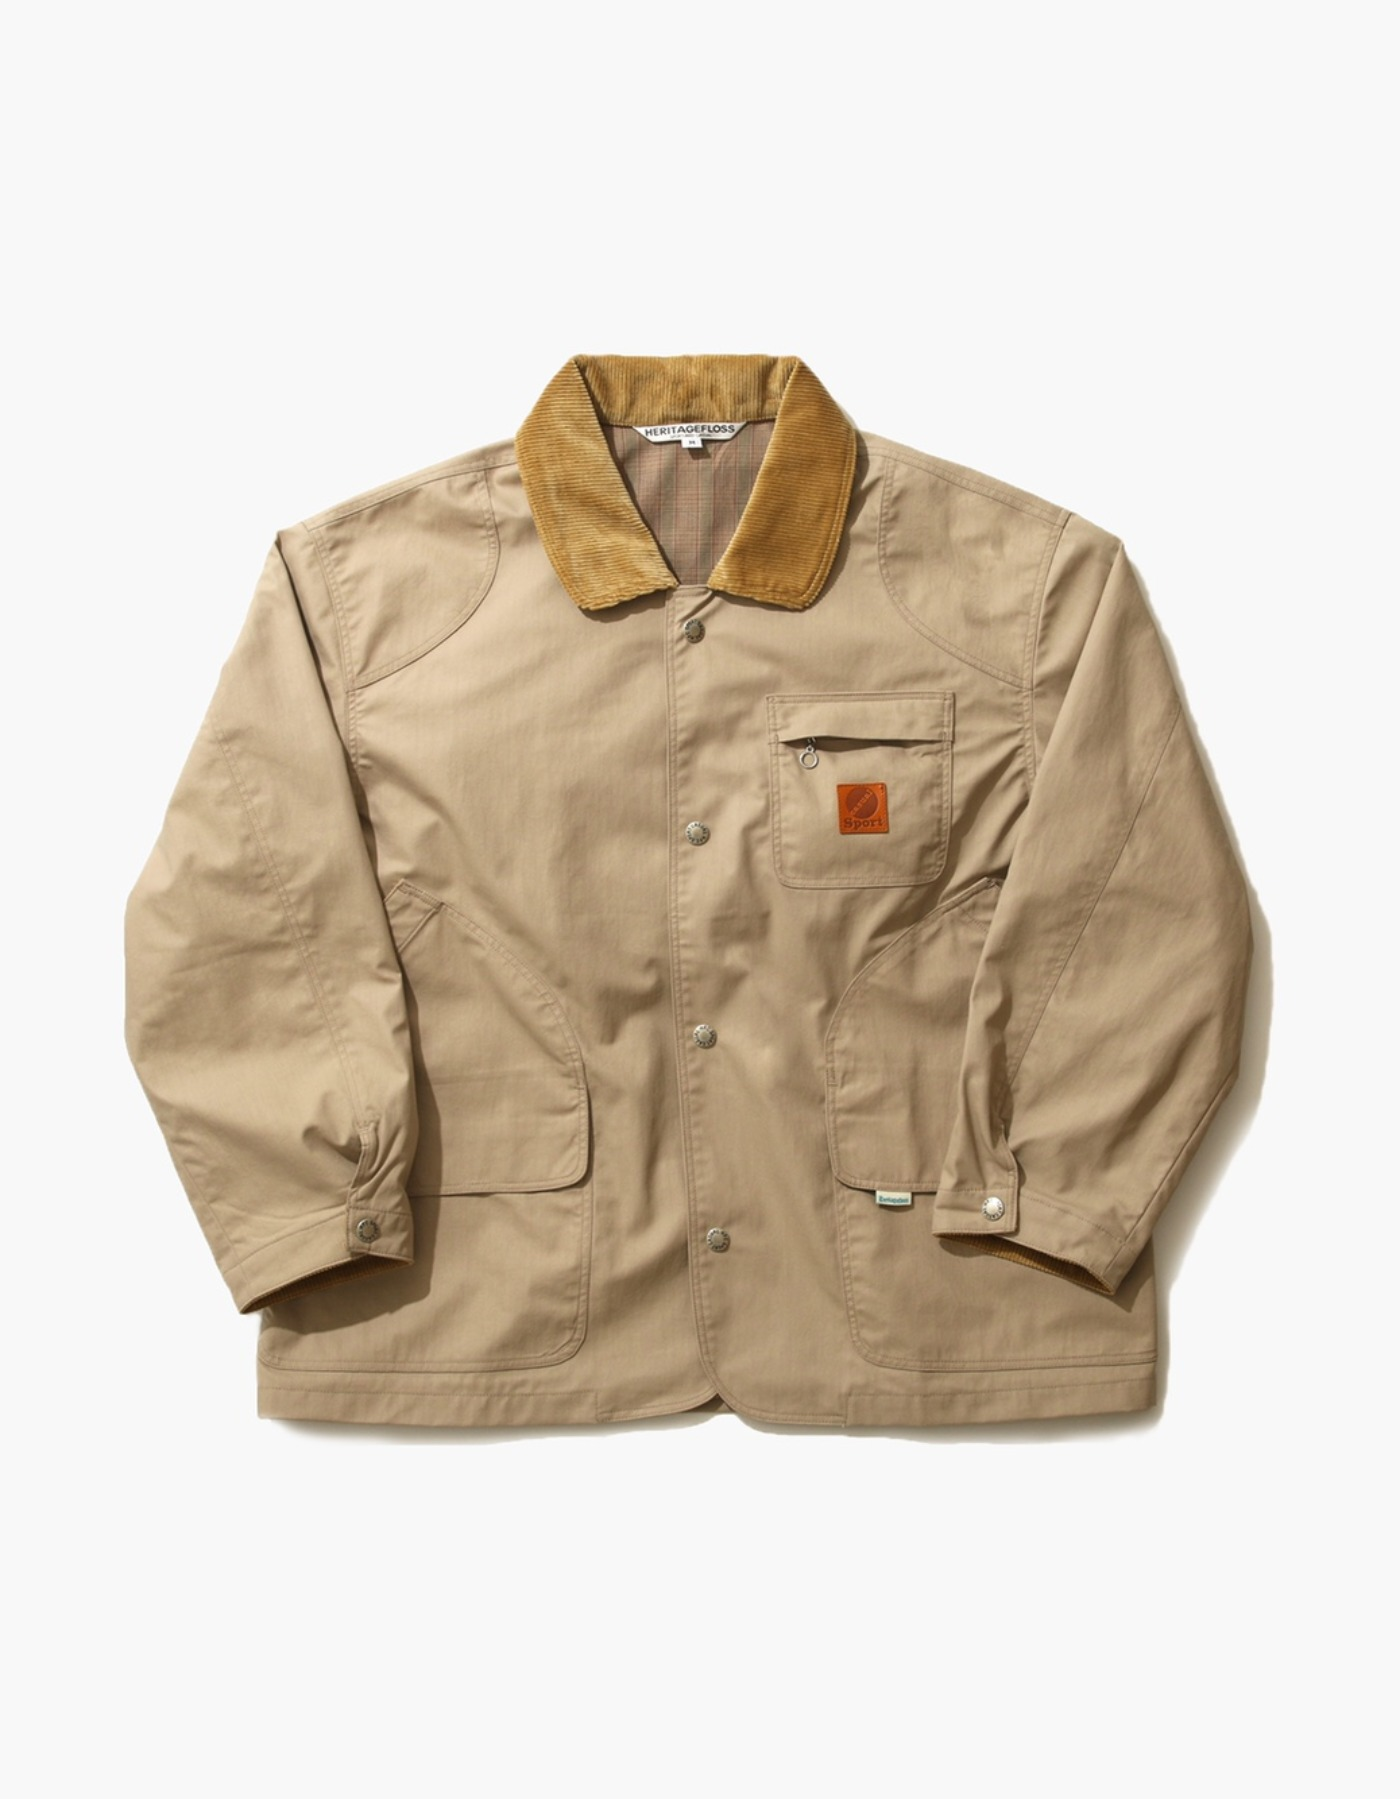 NYLON HUNTING JACKET / BEIGE